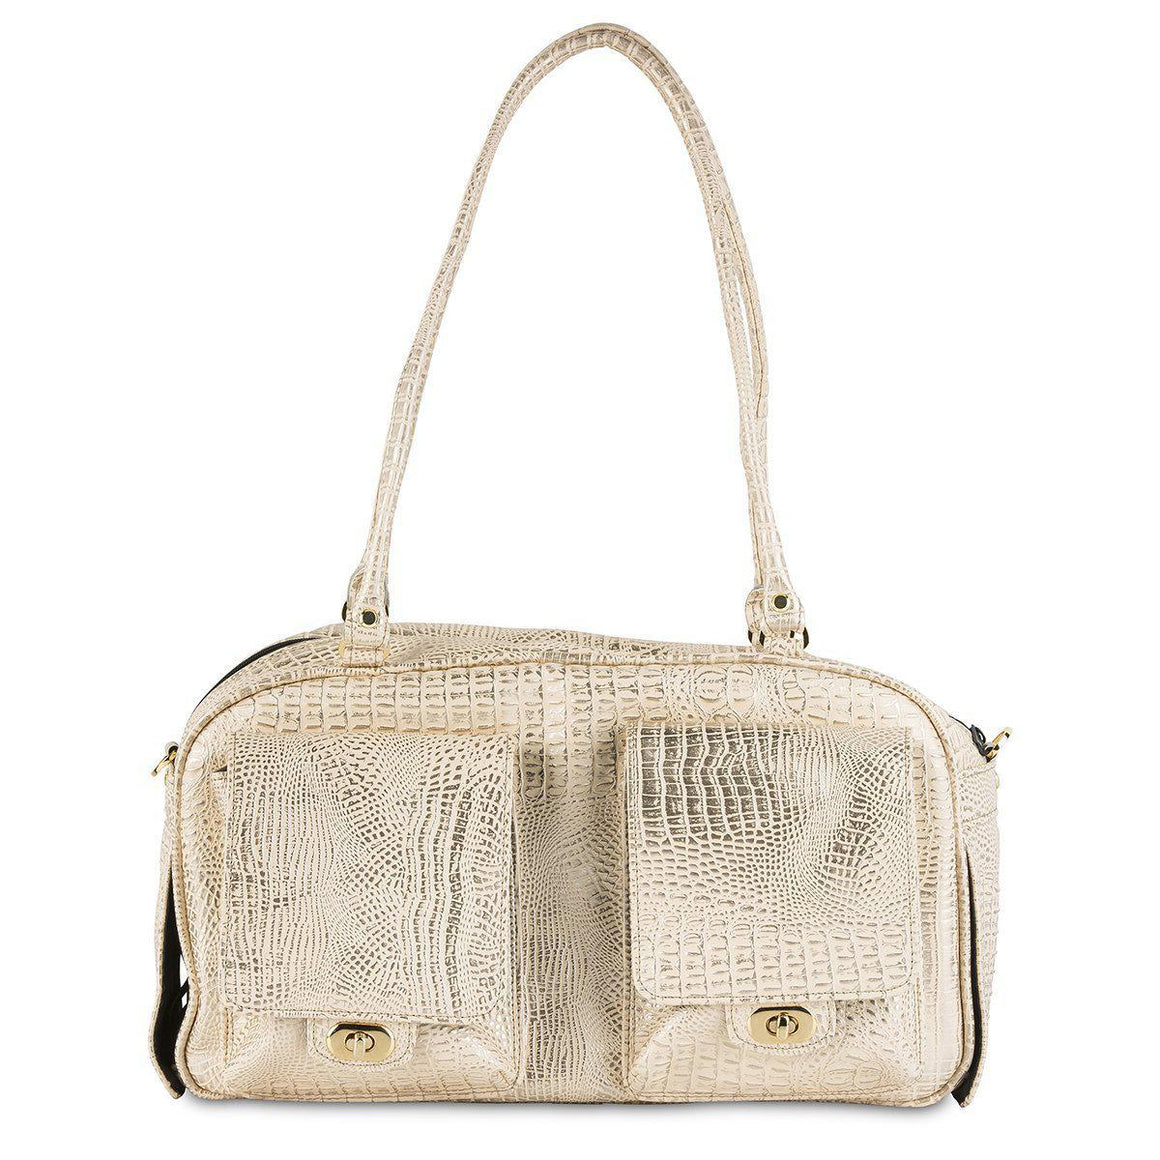 Petote Marlee Bag - Gold Croco